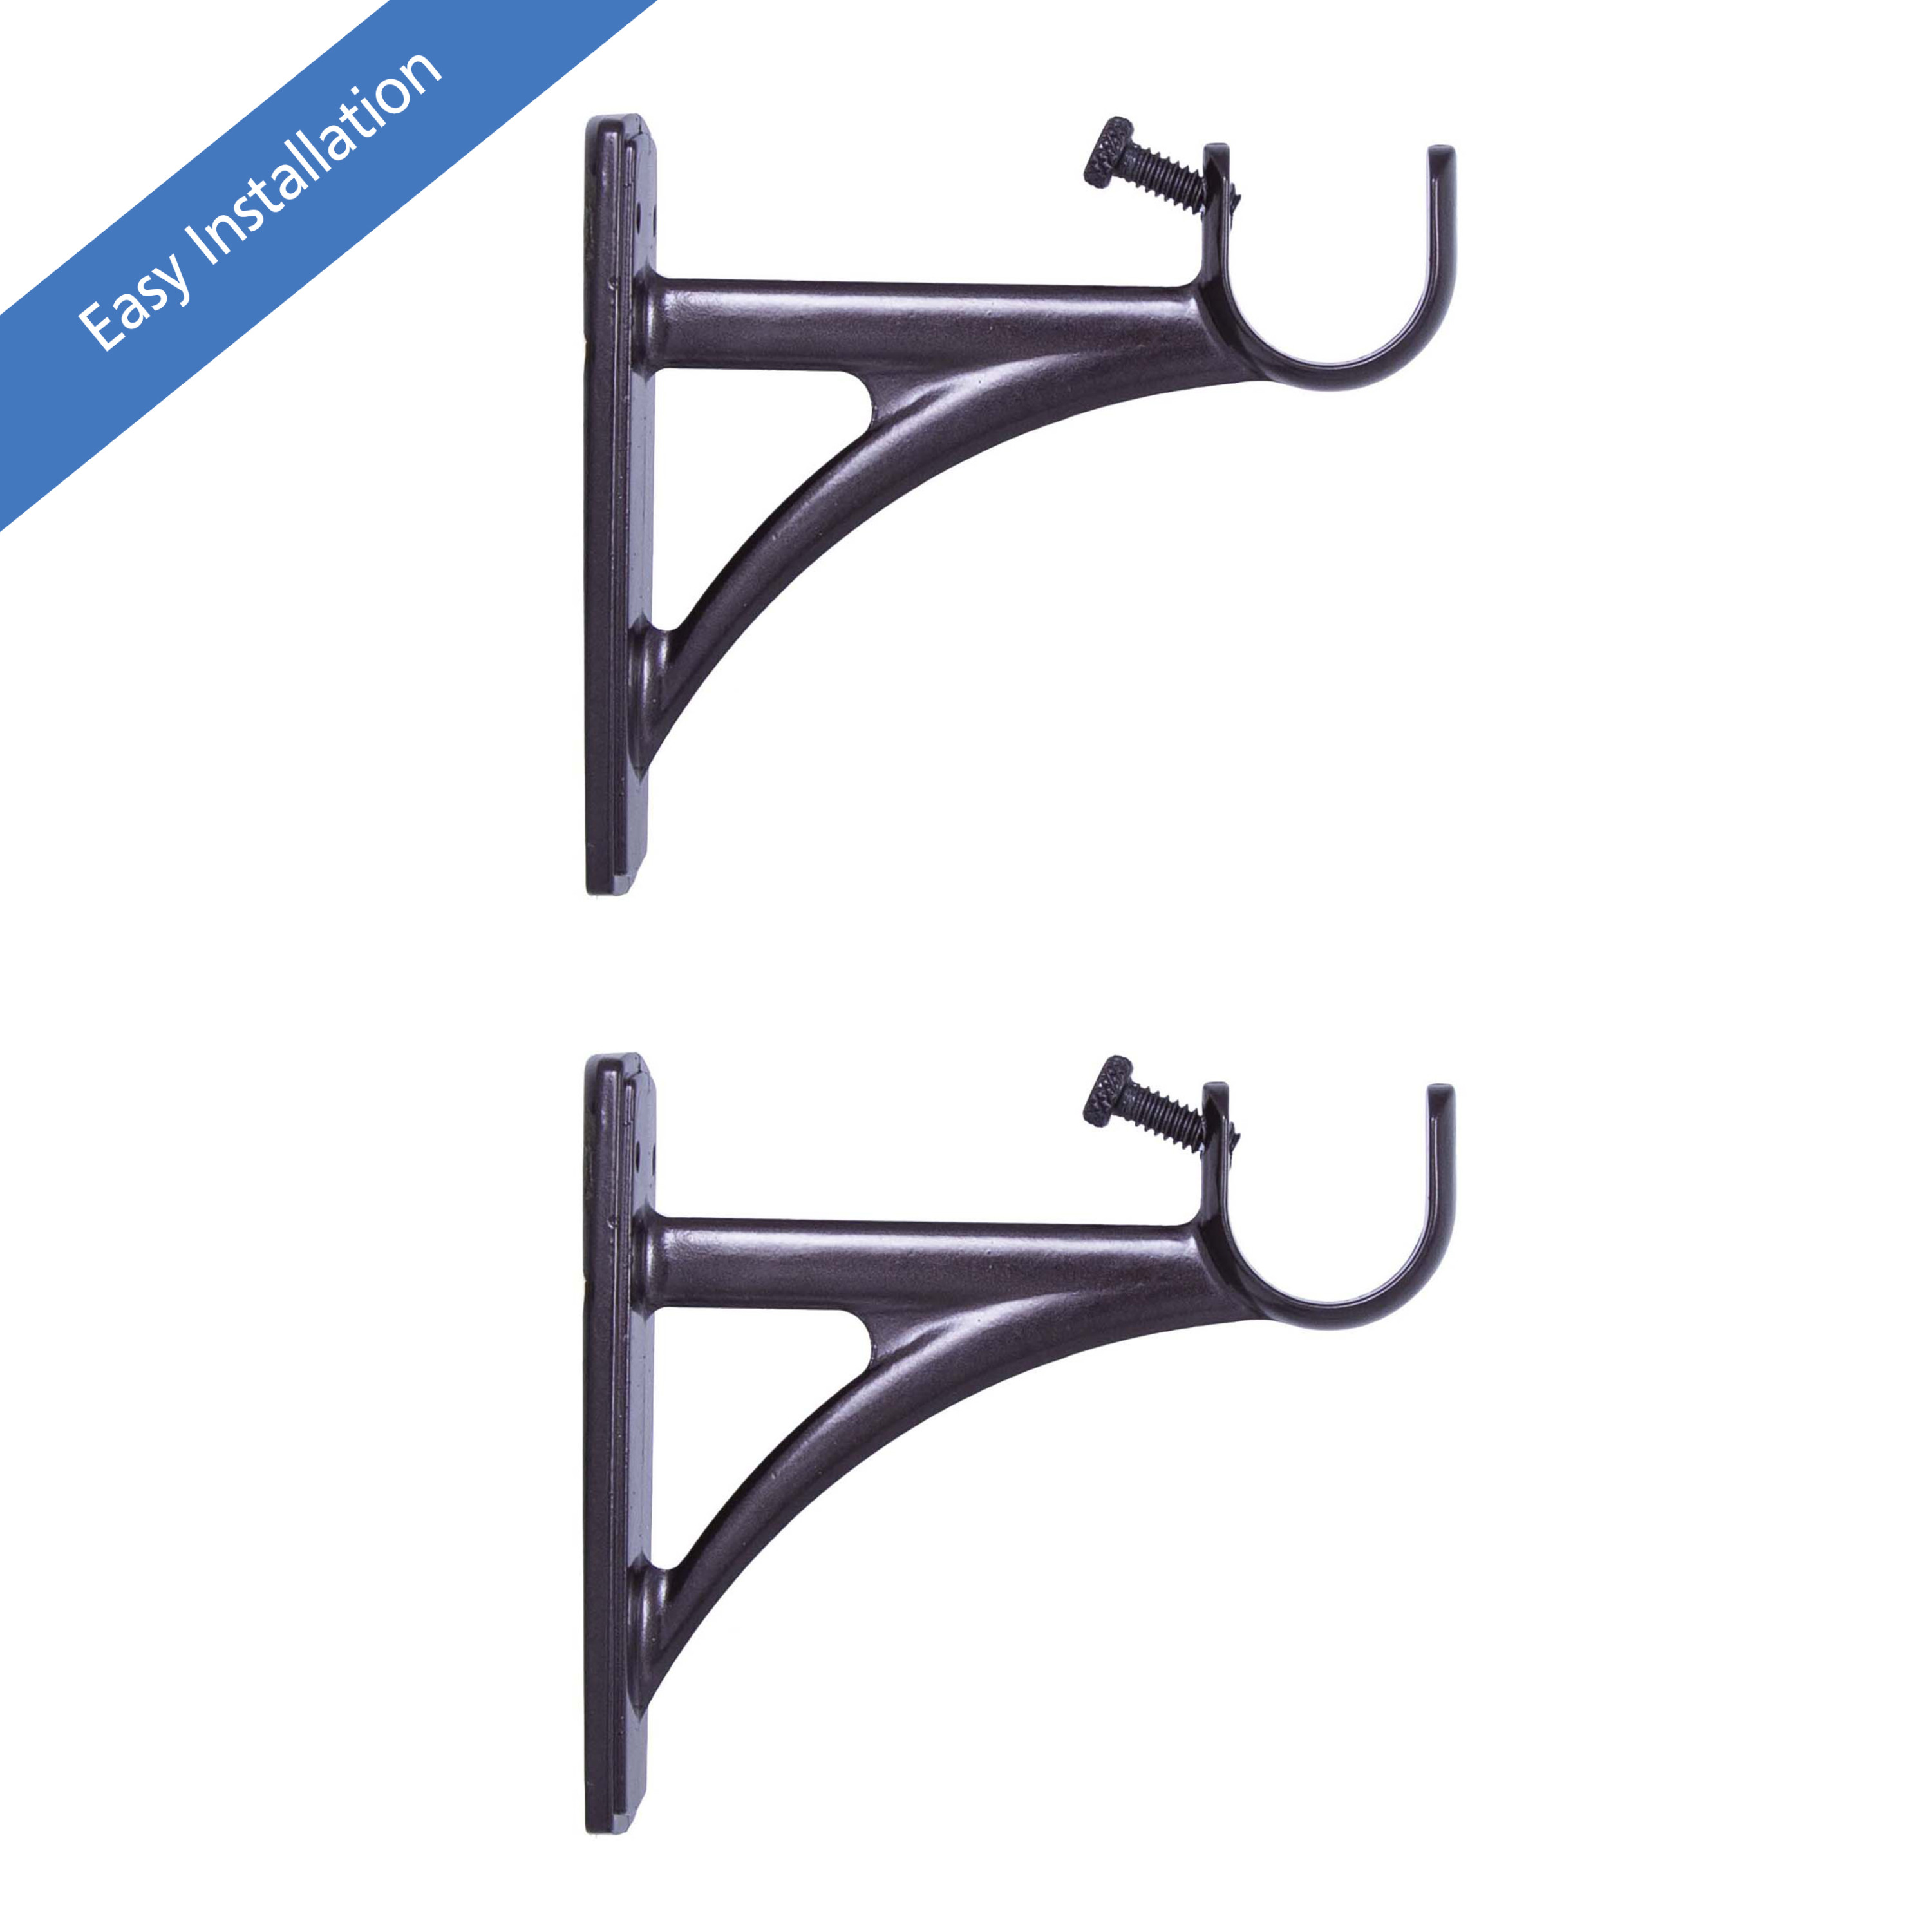 mainstays fast fit easy install single curtain rod brackets 3 4 in to 1 in diameter